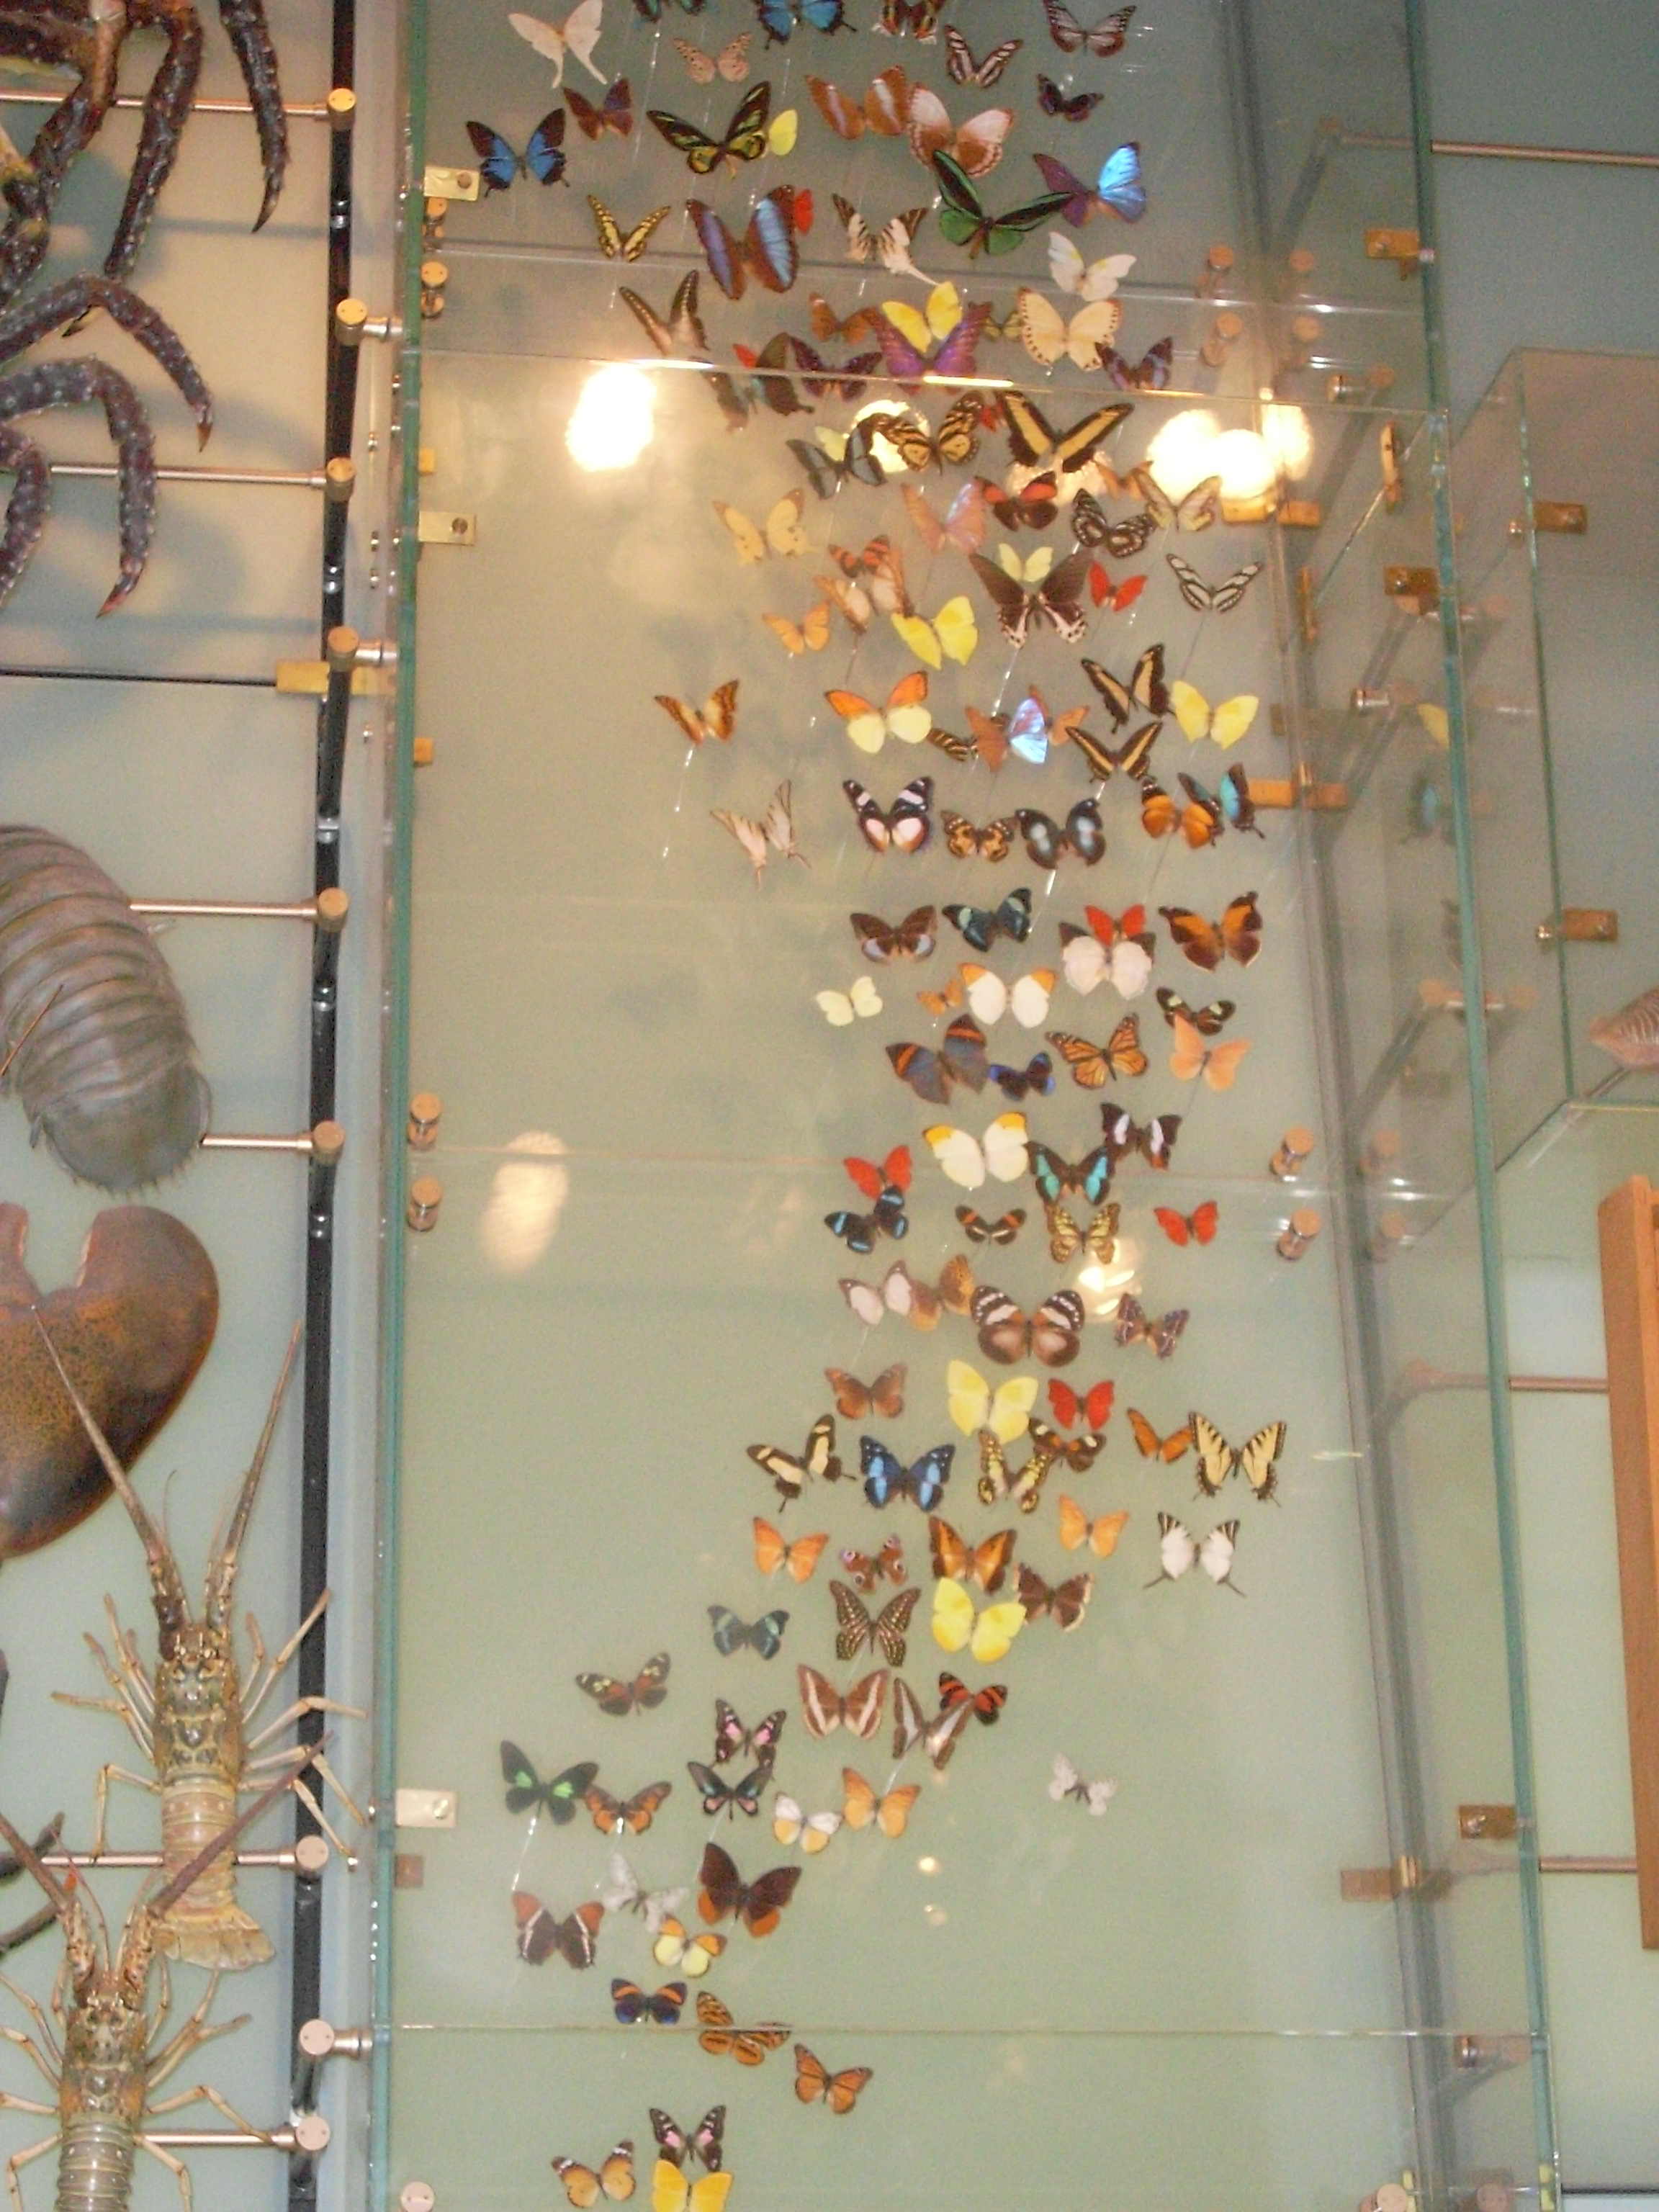 Butterfly Exhibit At Natural History Museum